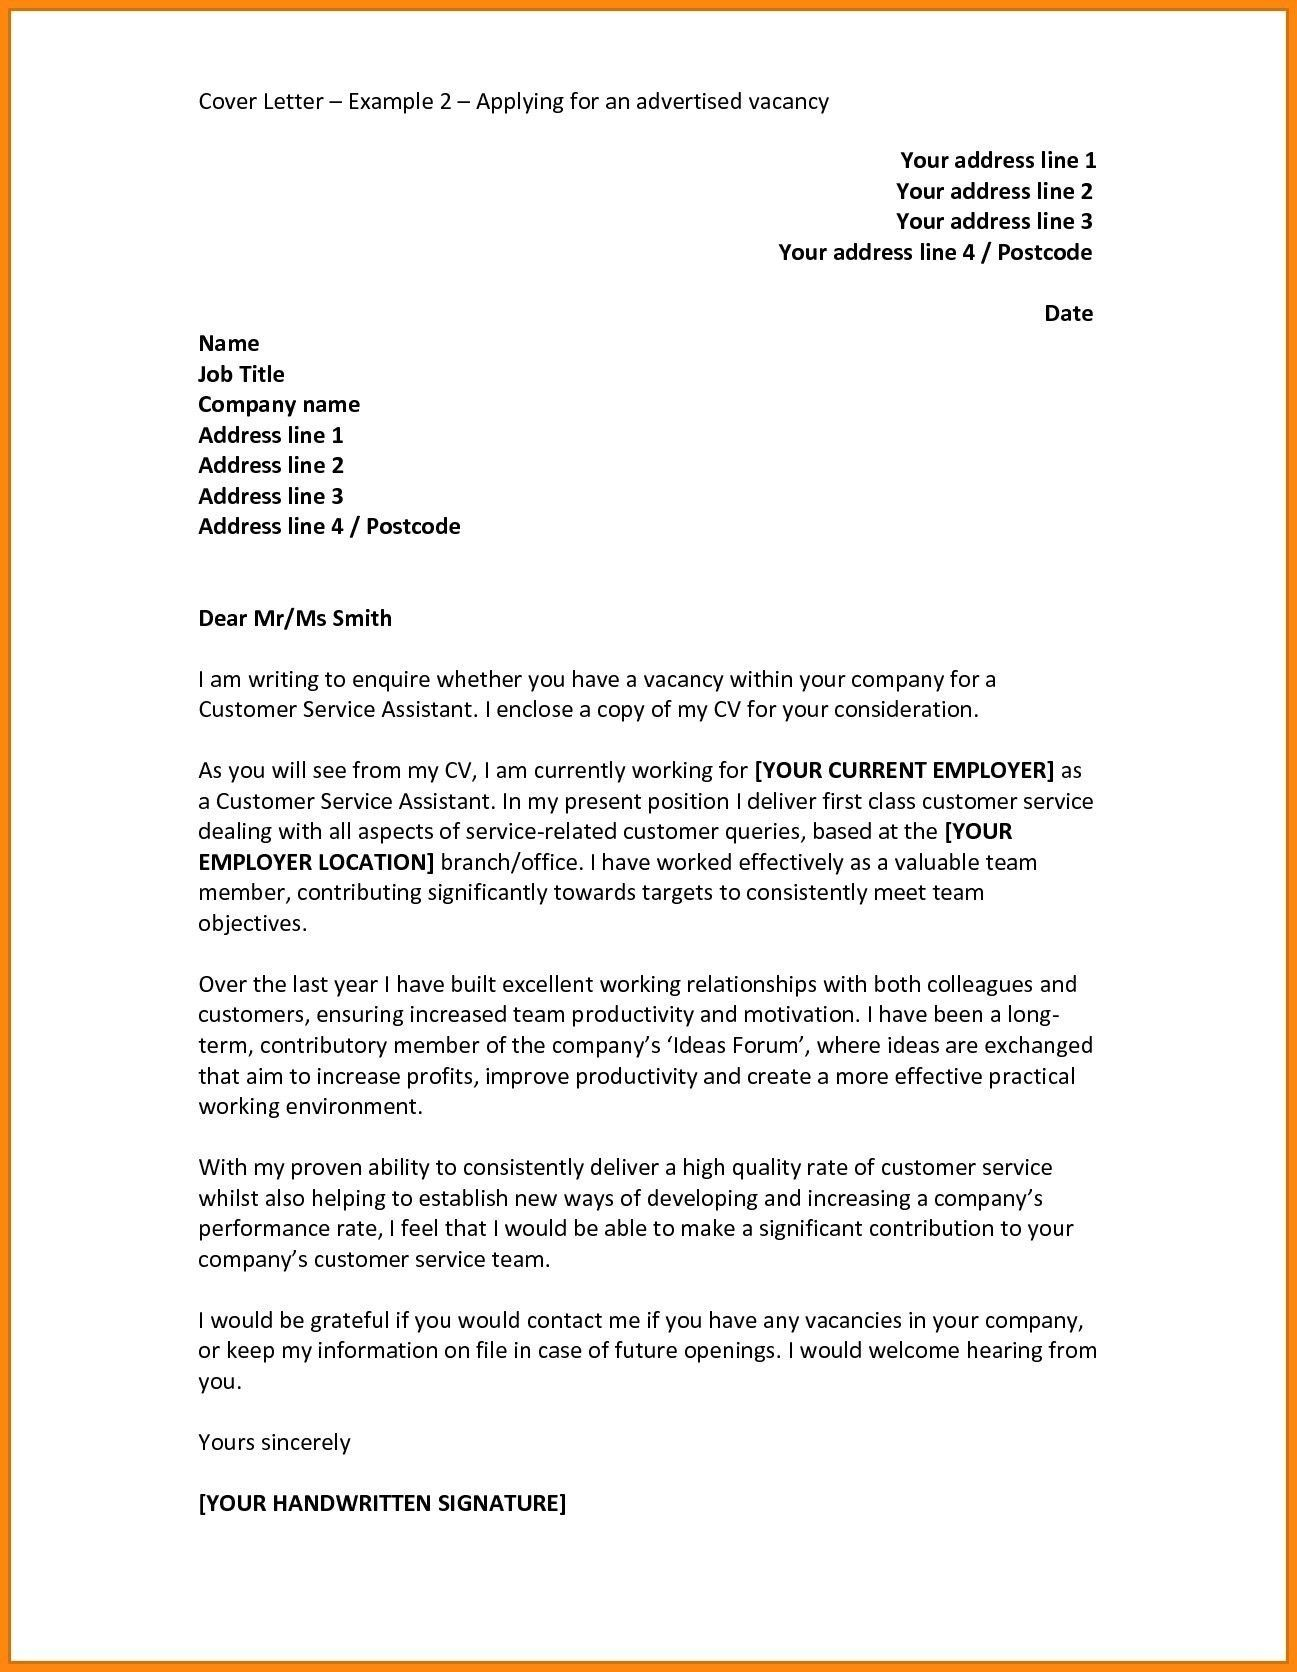 There Are Many Cover Letter Designs That You Can Use To Write Your